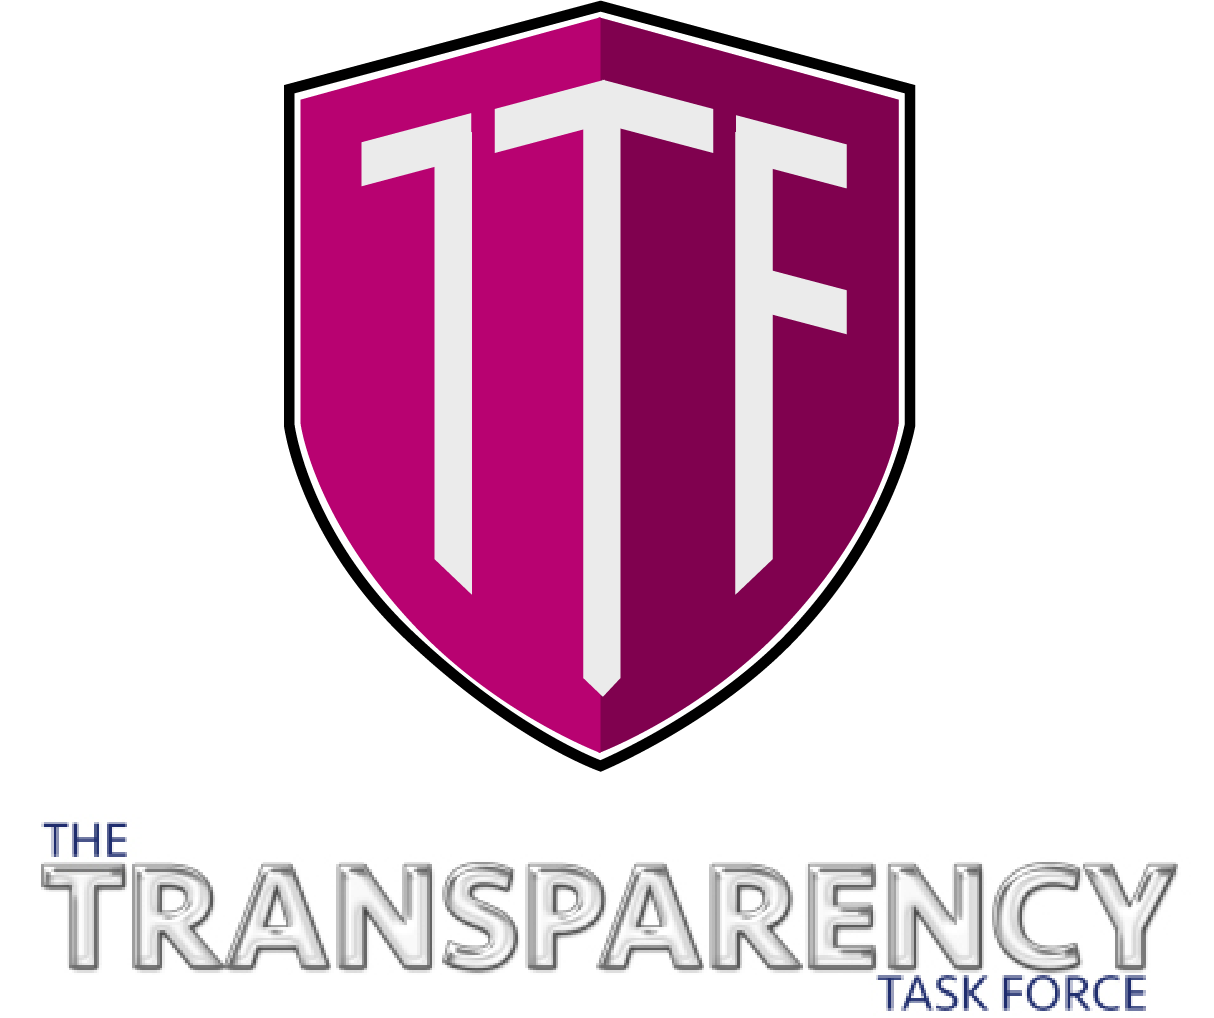 Fixing Banking organized by The Transparency Task Force